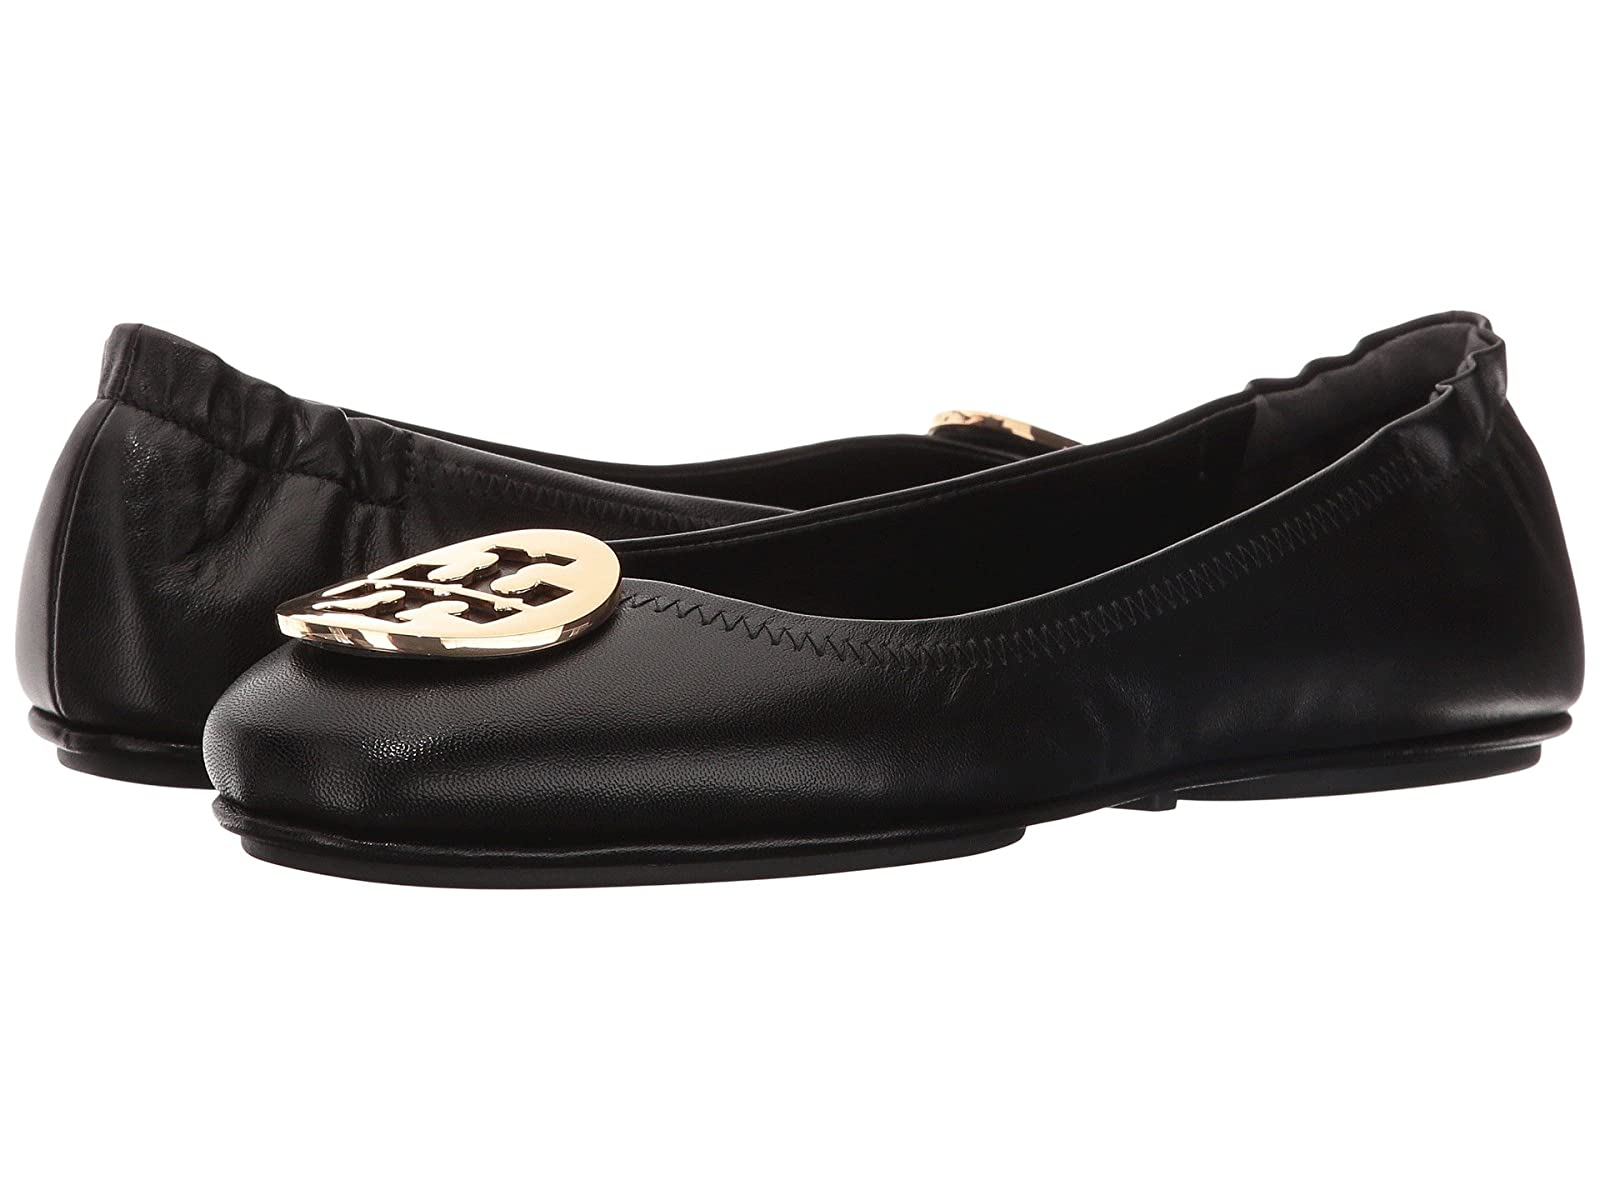 Tory Burch Minnie Travel Ballet FlatAtmospheric grades have affordable shoes